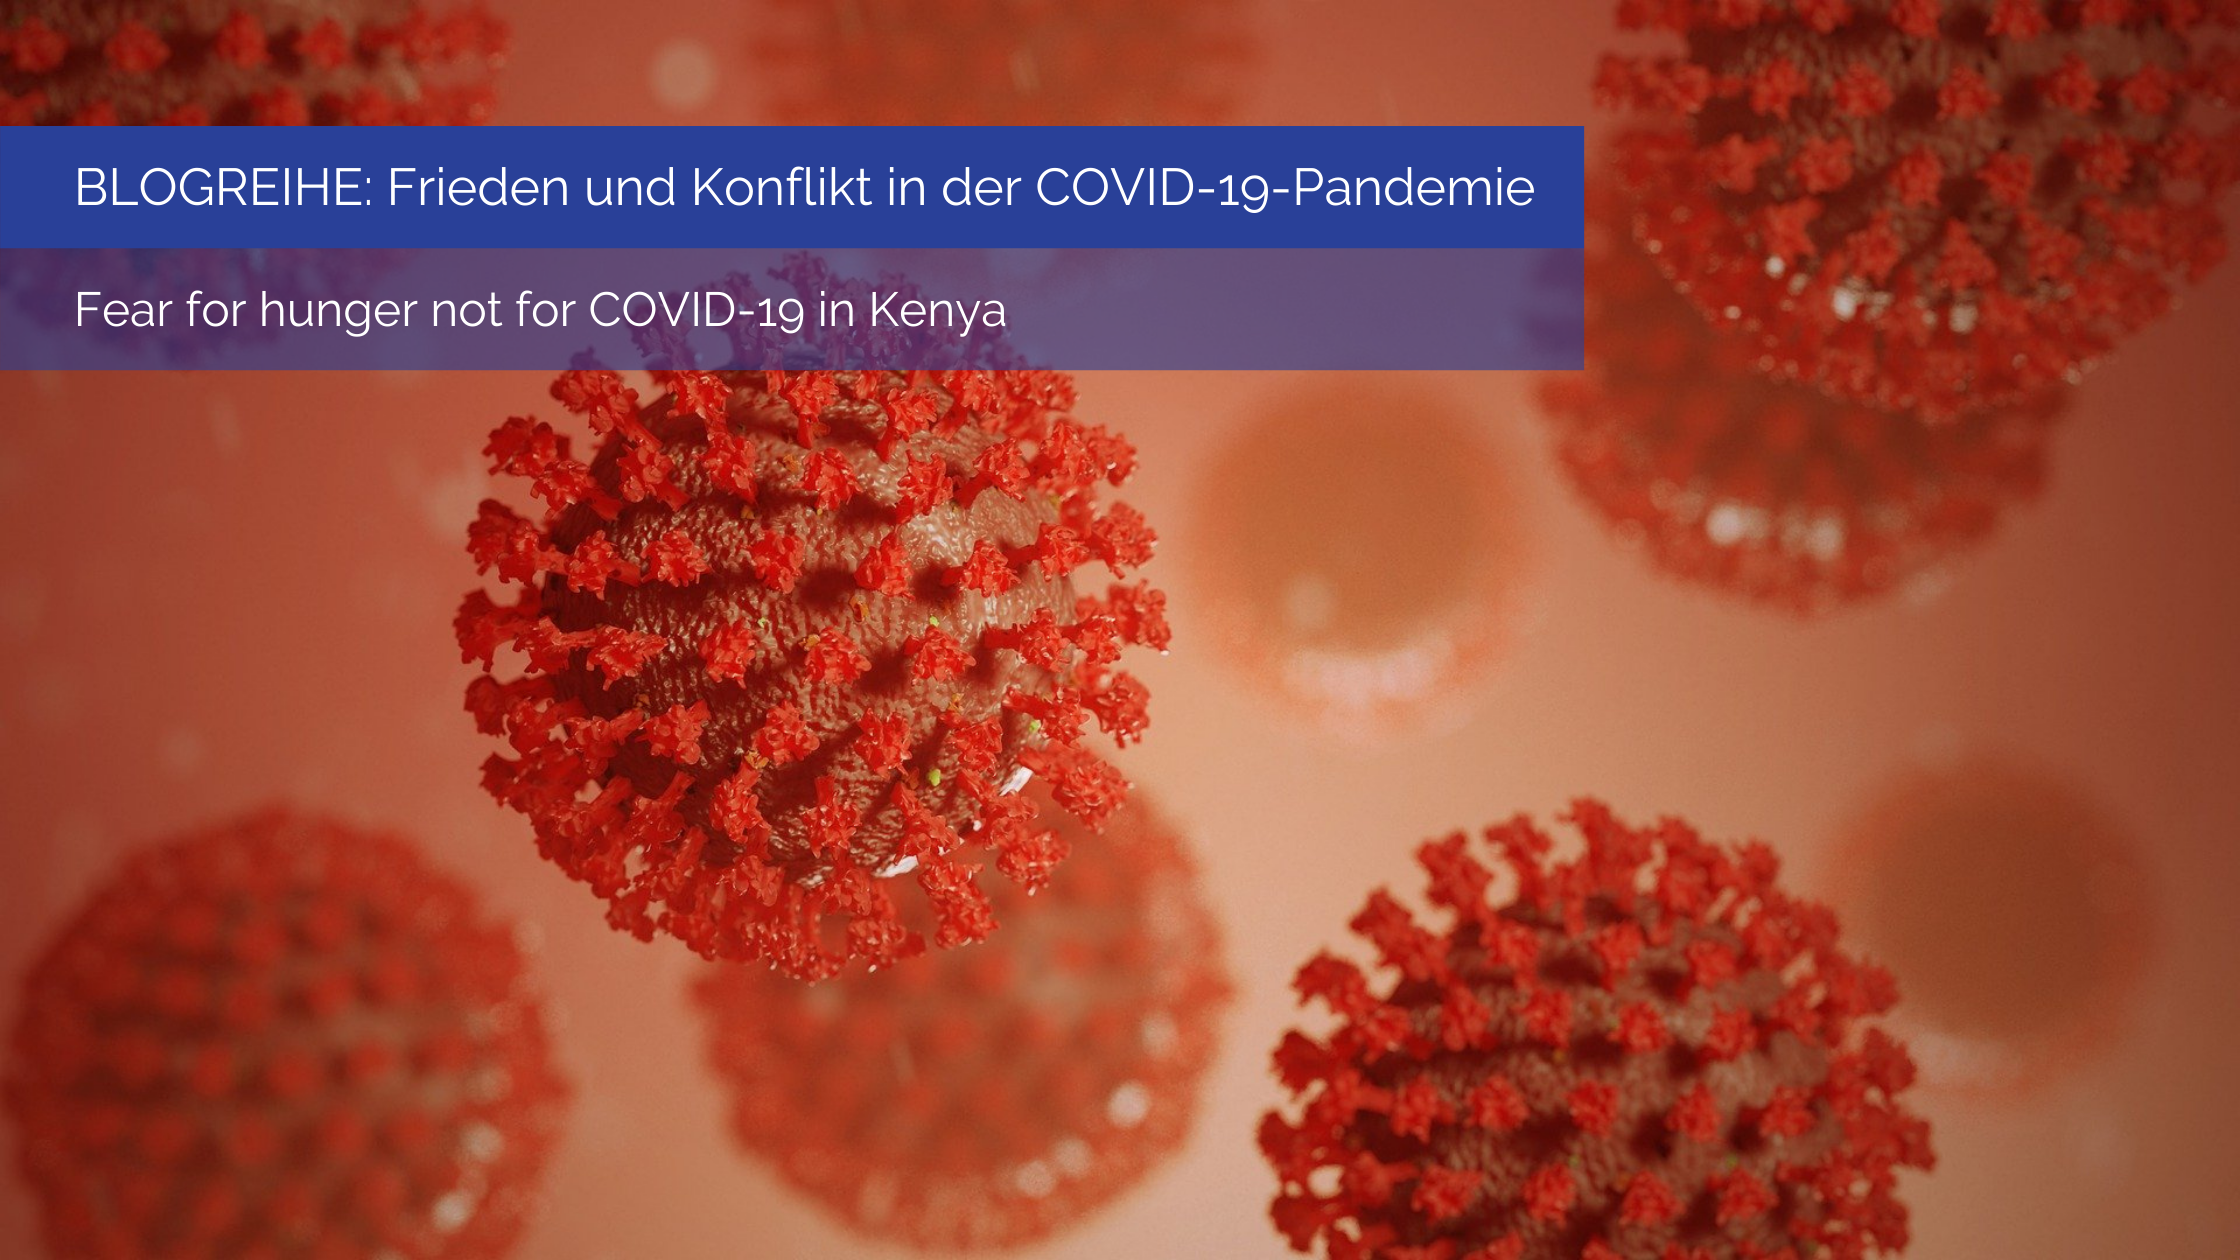 Fear for hunger not for COVID-19 in Kenya